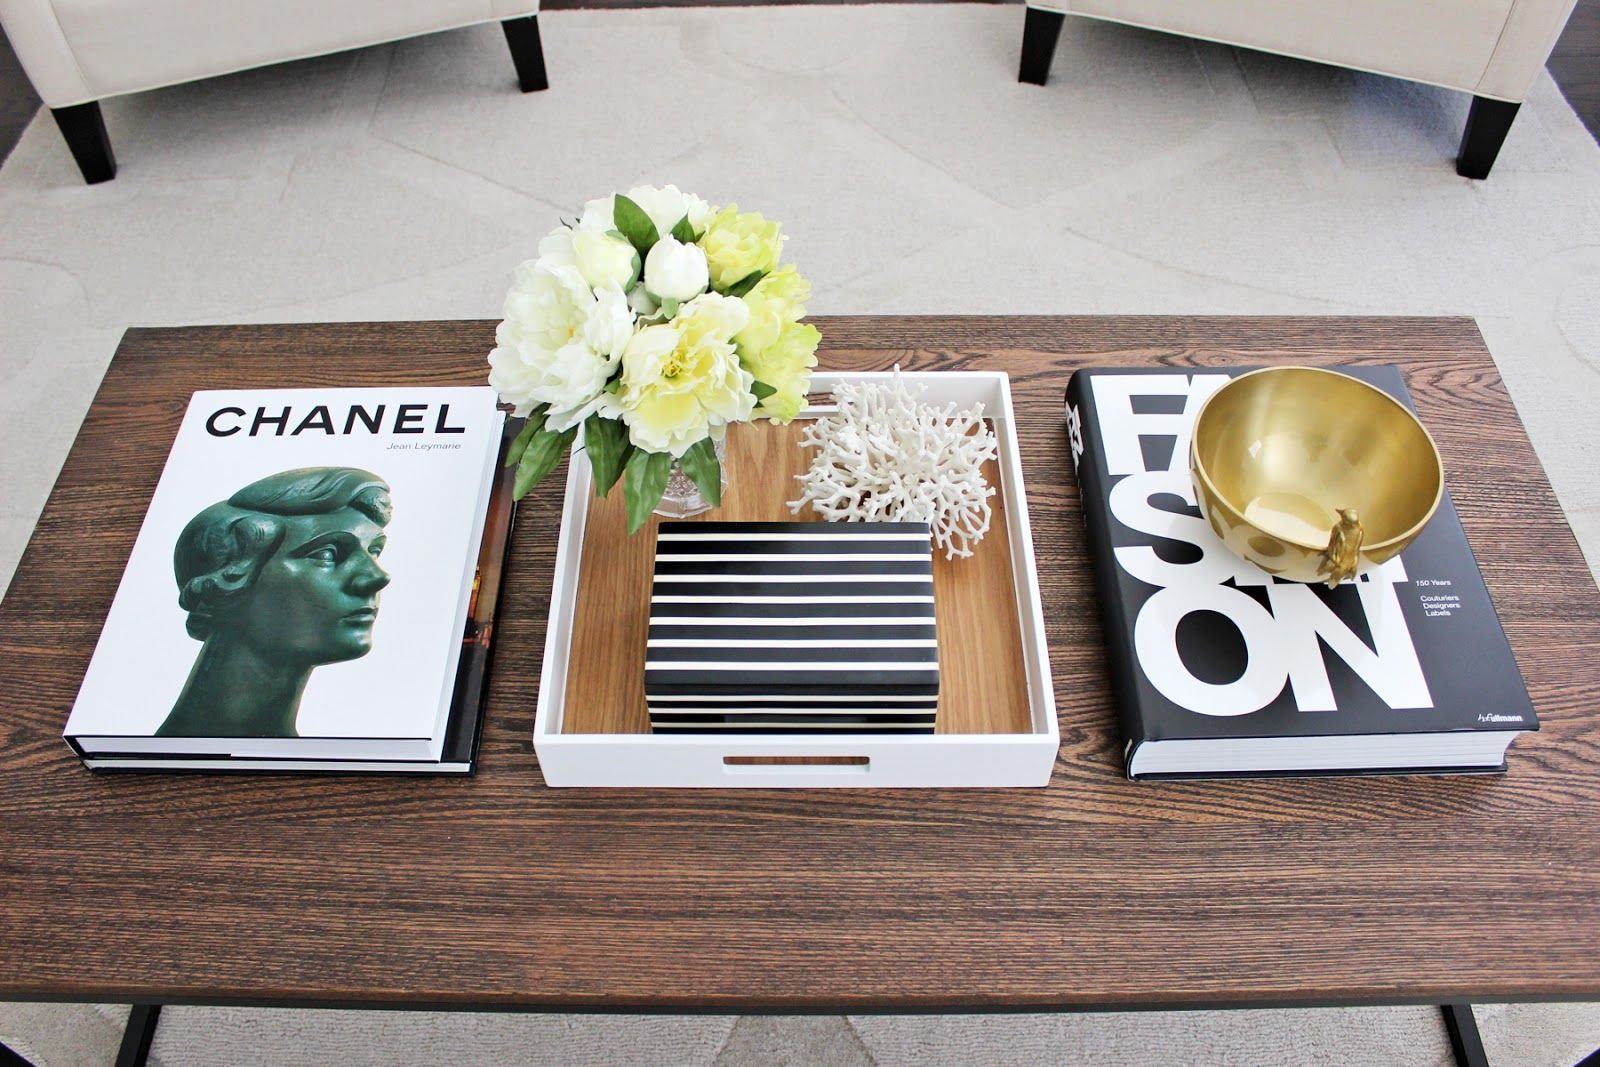 Spring coffee table styling   AM Dolce Vita   Pinterest   Fashion ...